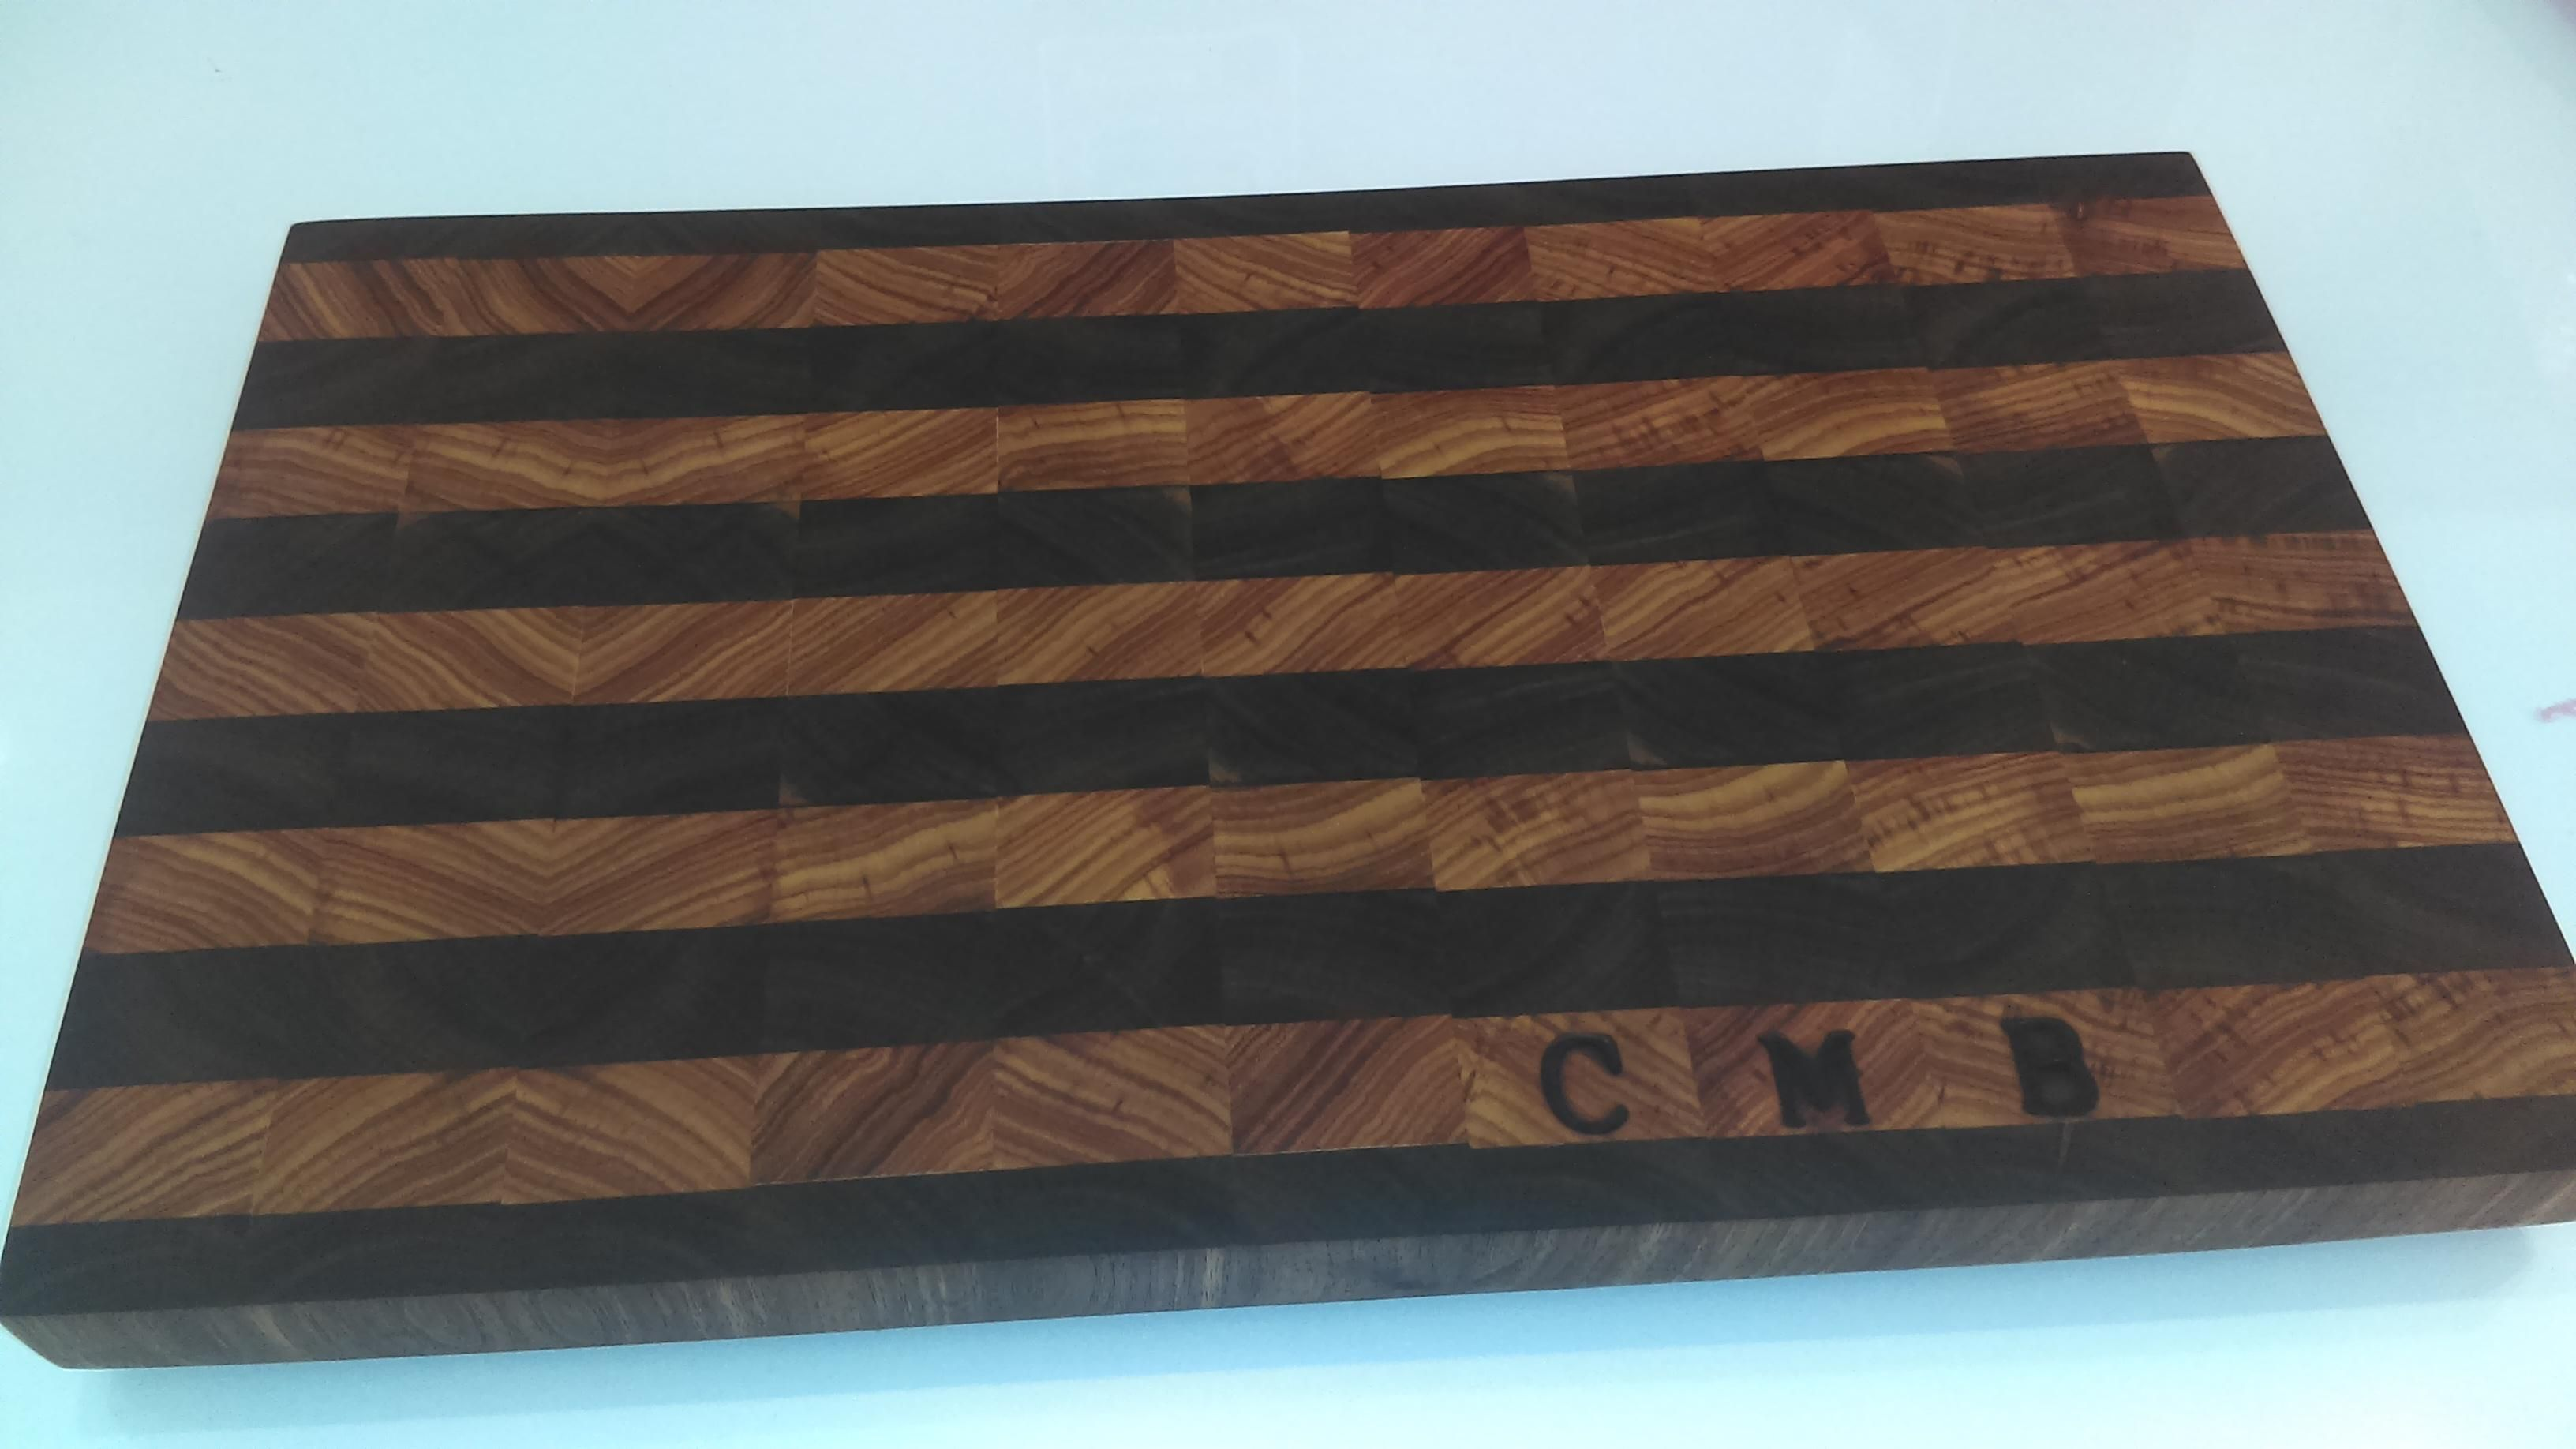 End grain cutting board I made awhile back for a friend http://ift.tt/2d7ZOLe